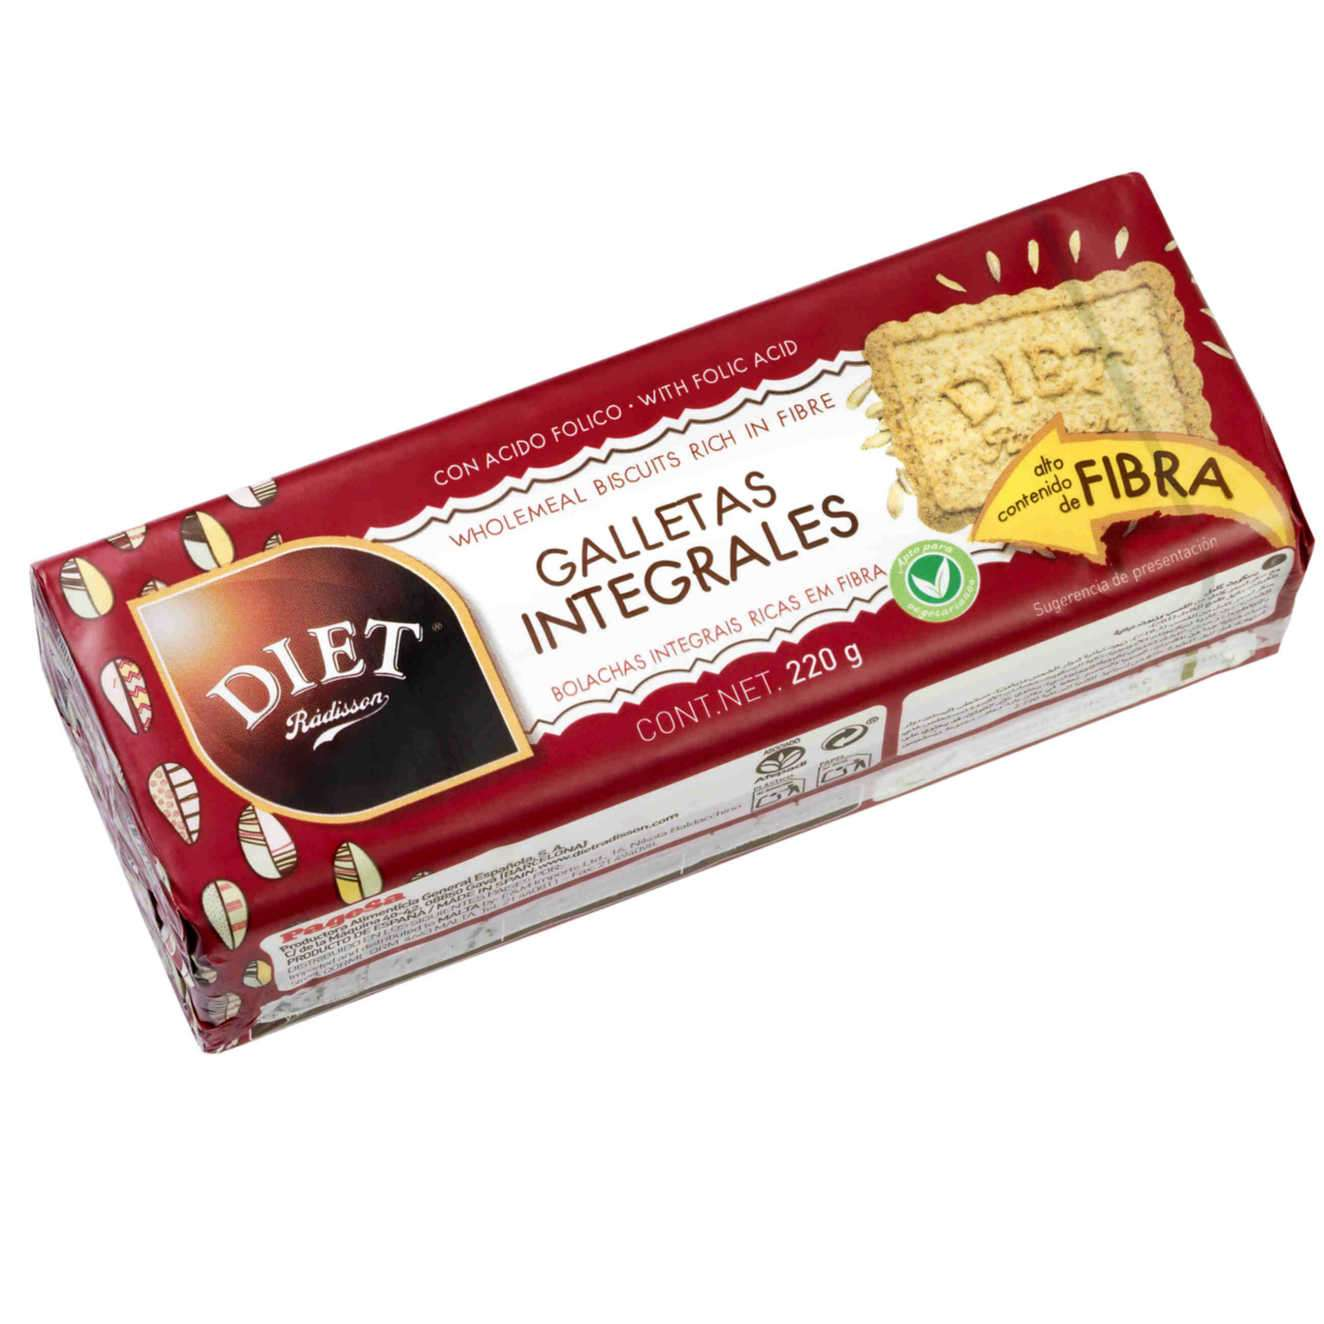 GALLETAS INTEGRALES - 220g